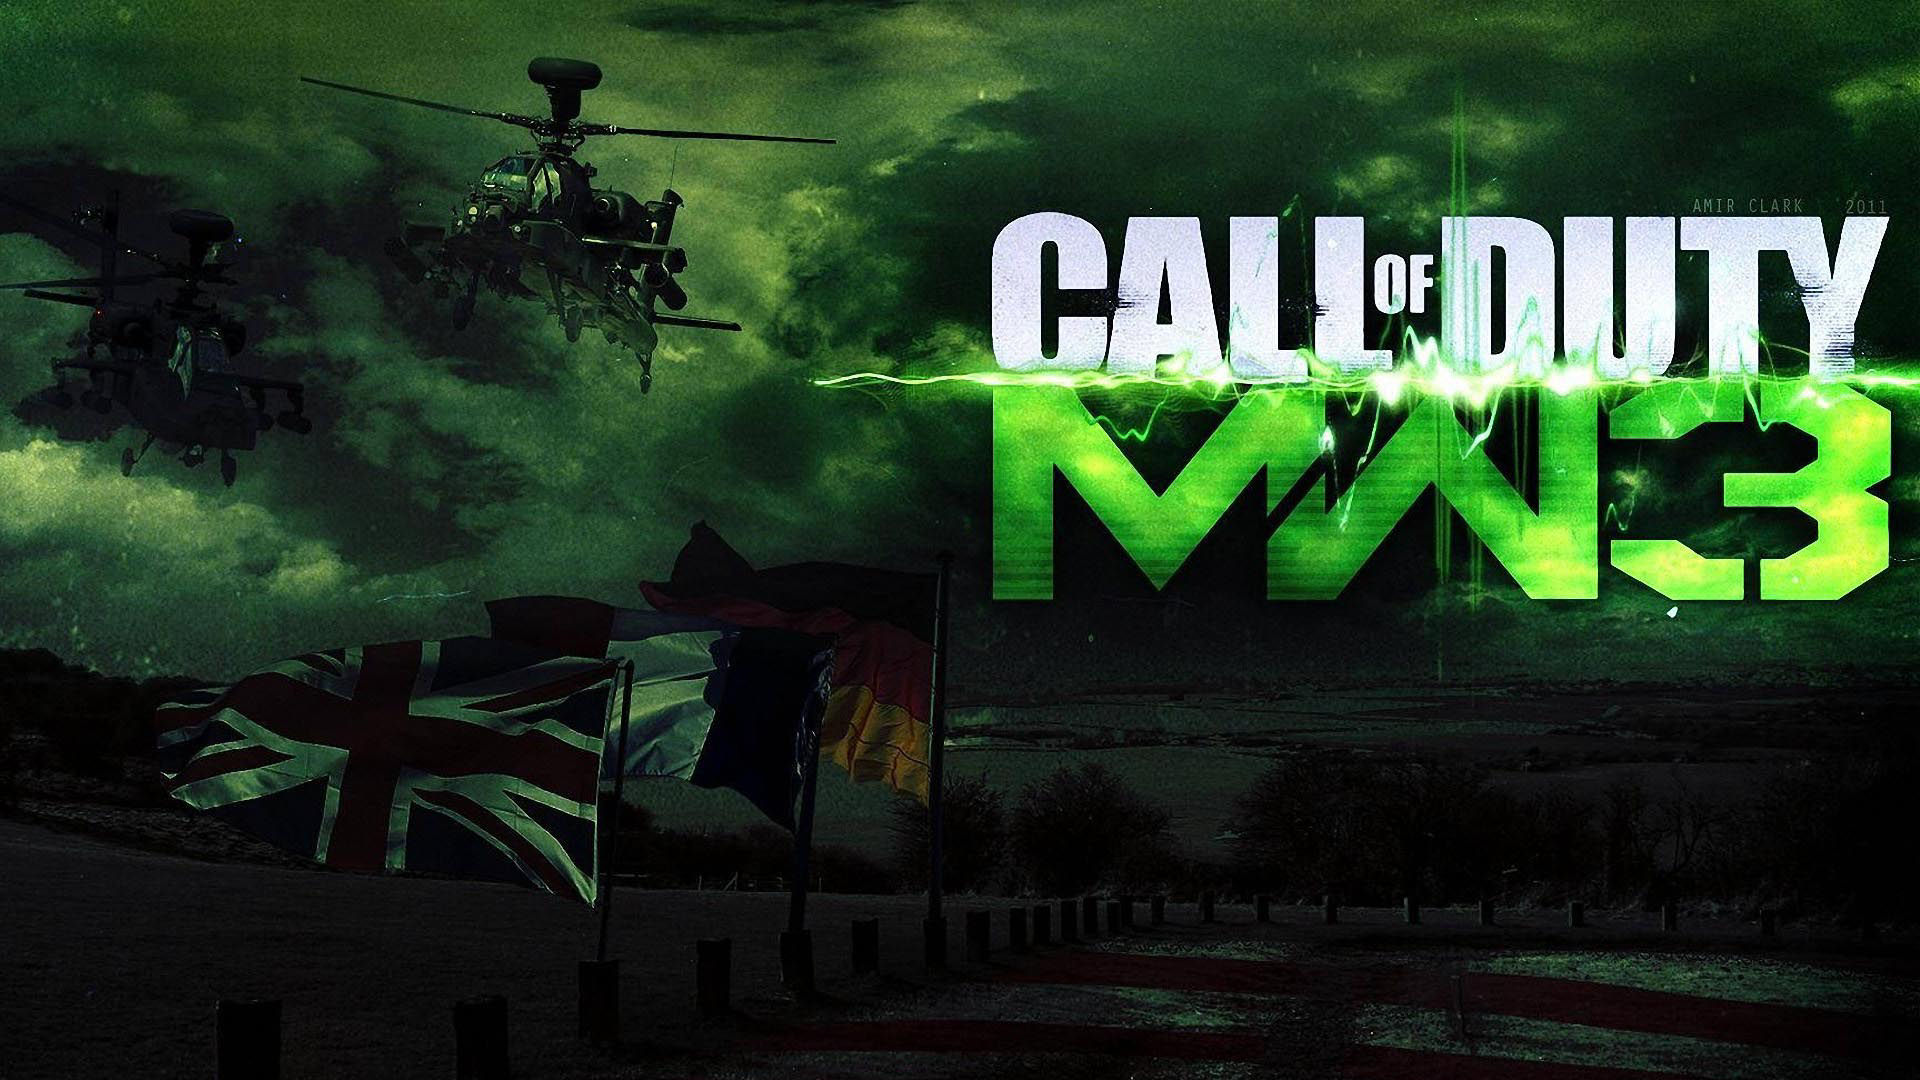 call of duty wallpaper 1080p 1920 1080 wallpaper Car Pictures 1920x1080